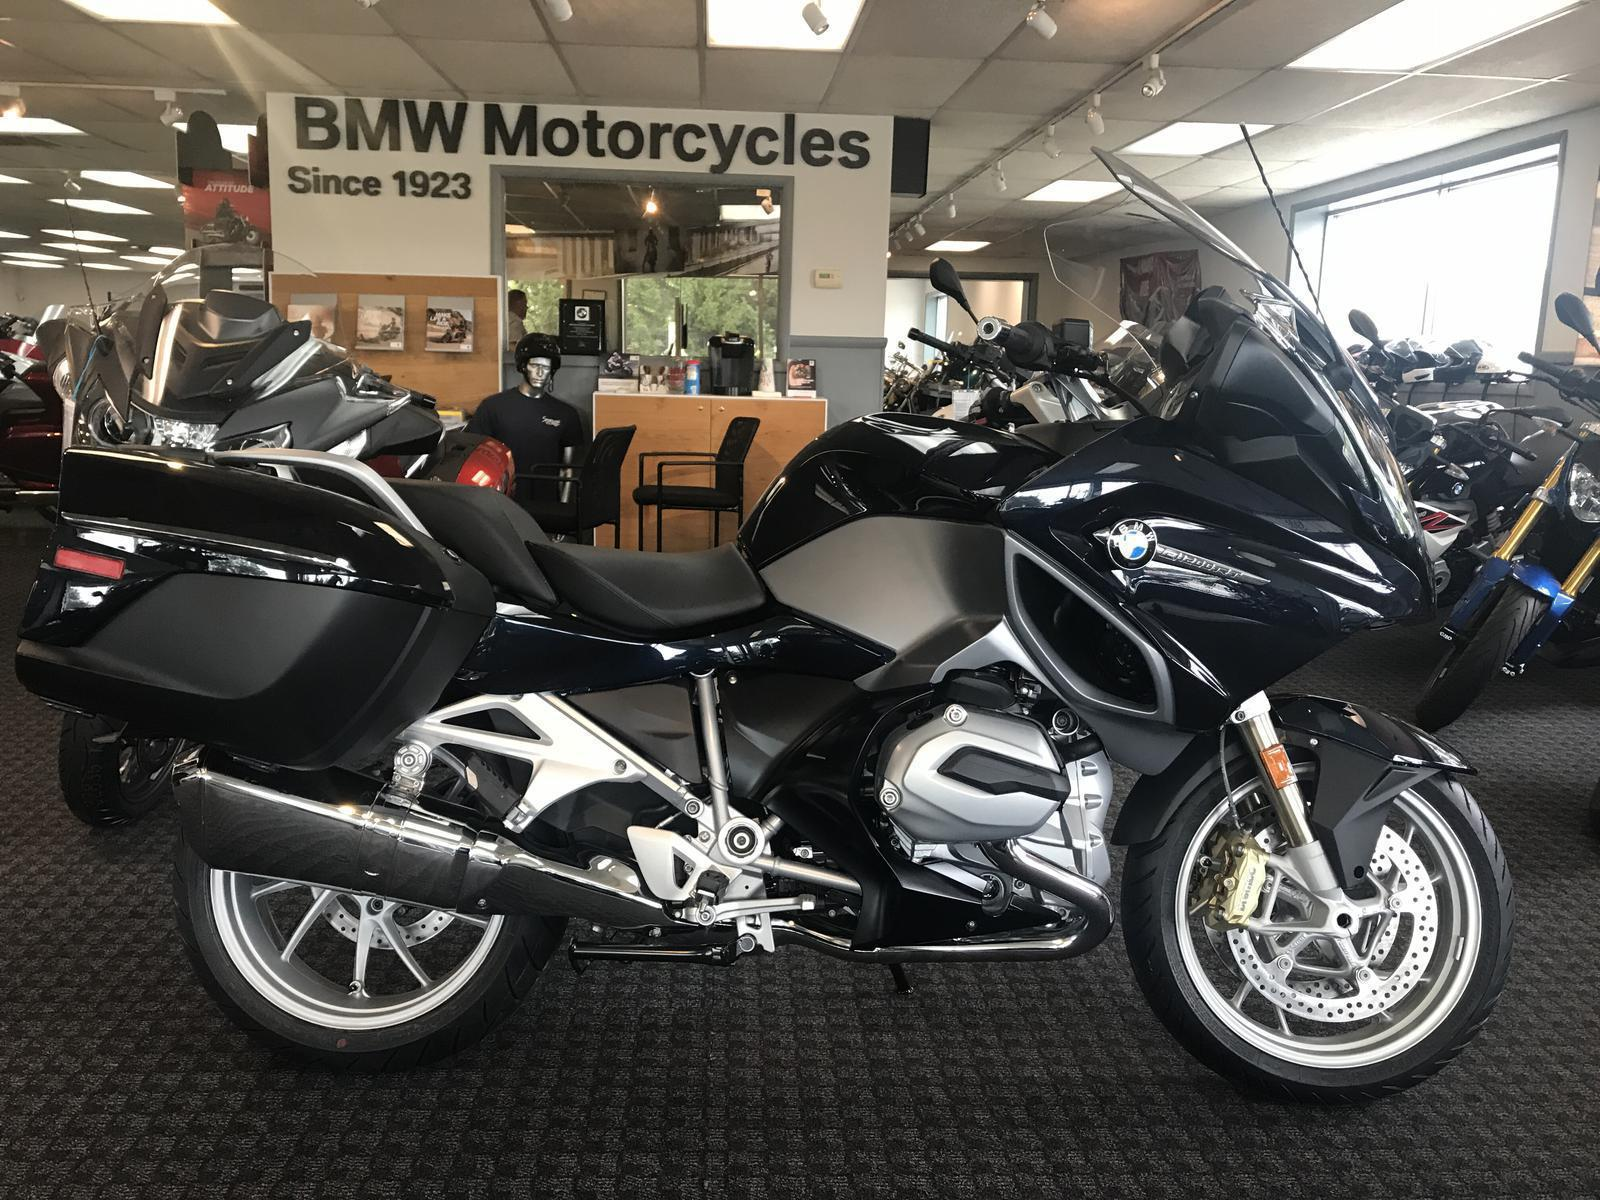 2018 Bmw R1200rt For Sale In Urbana Il Sportland Motorsports 217